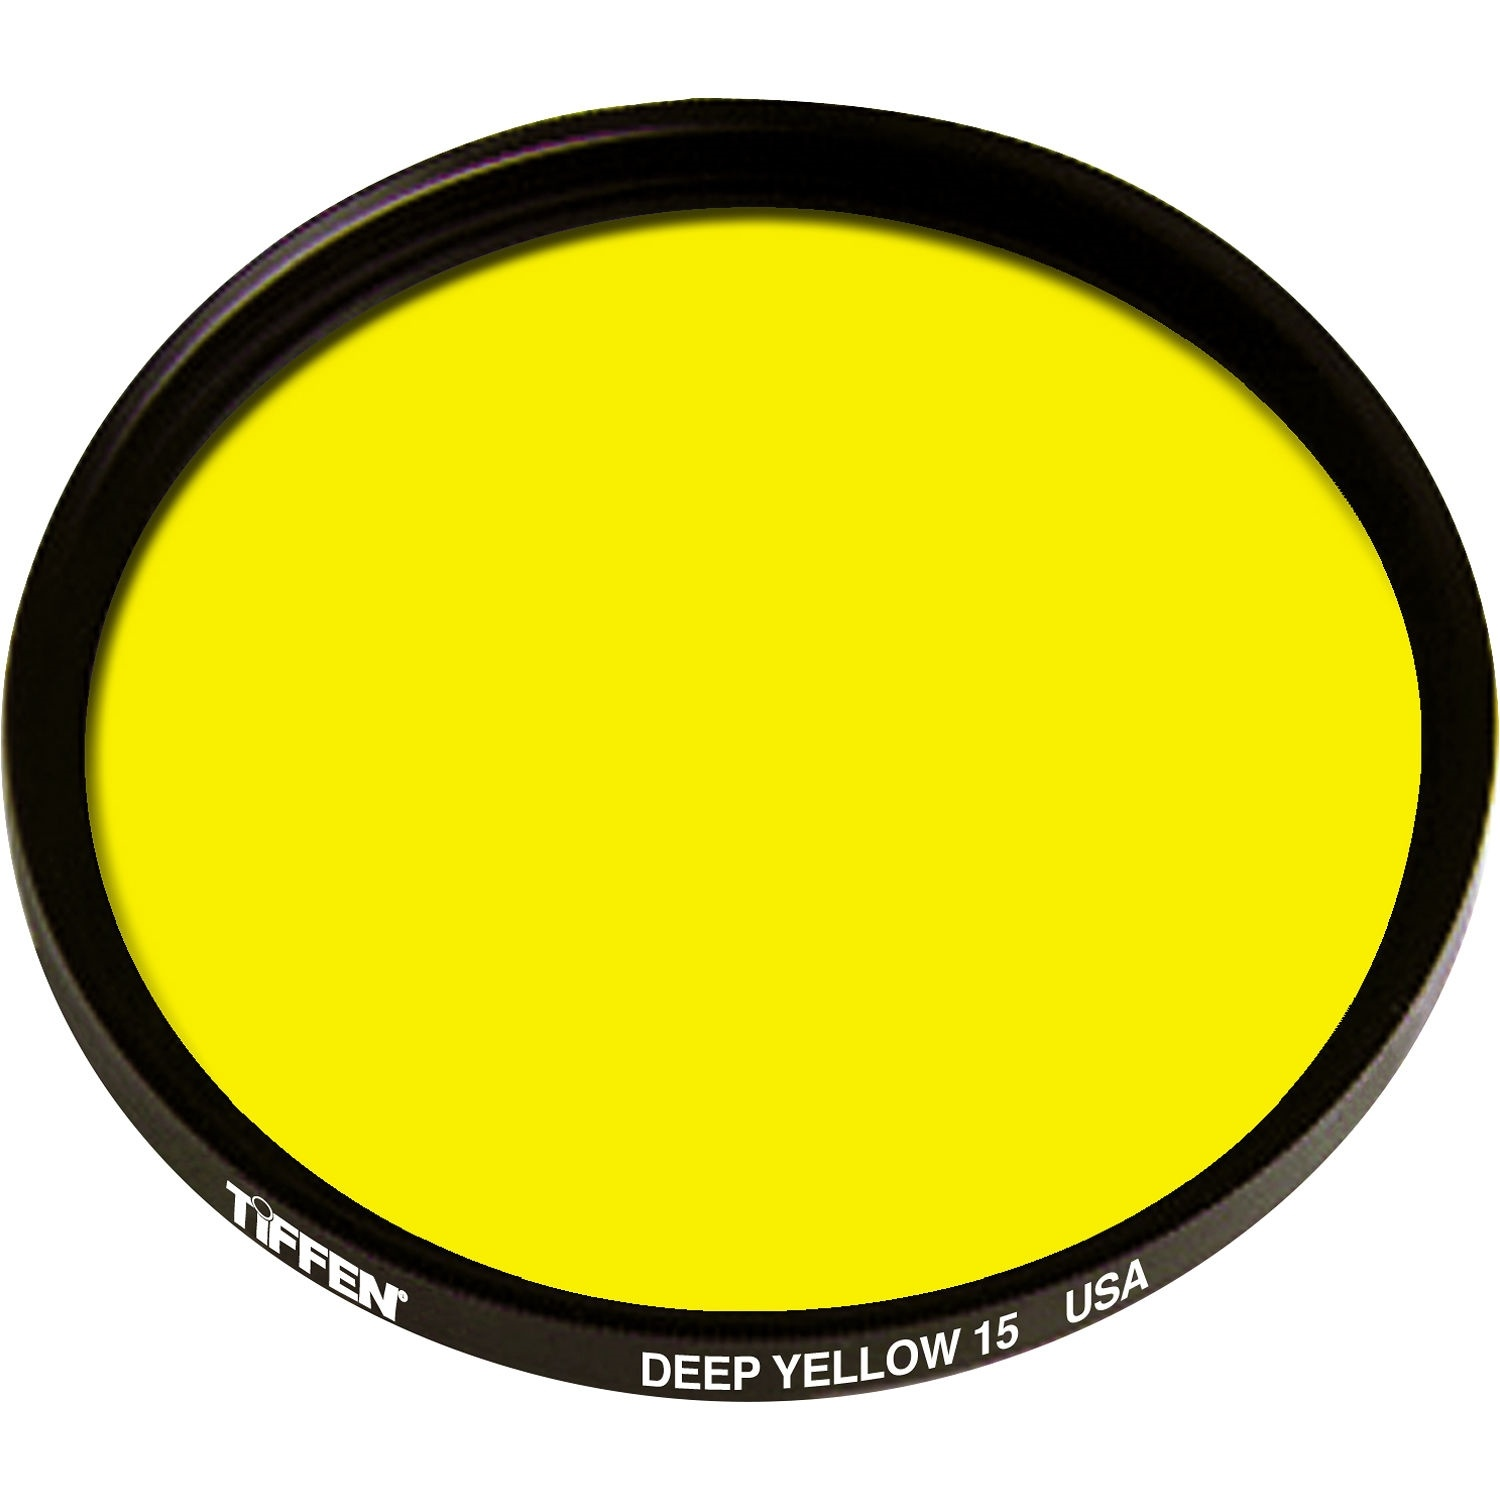 Tiffen 46mm Deep Yellow 15 Glass Filter for Black & White Film